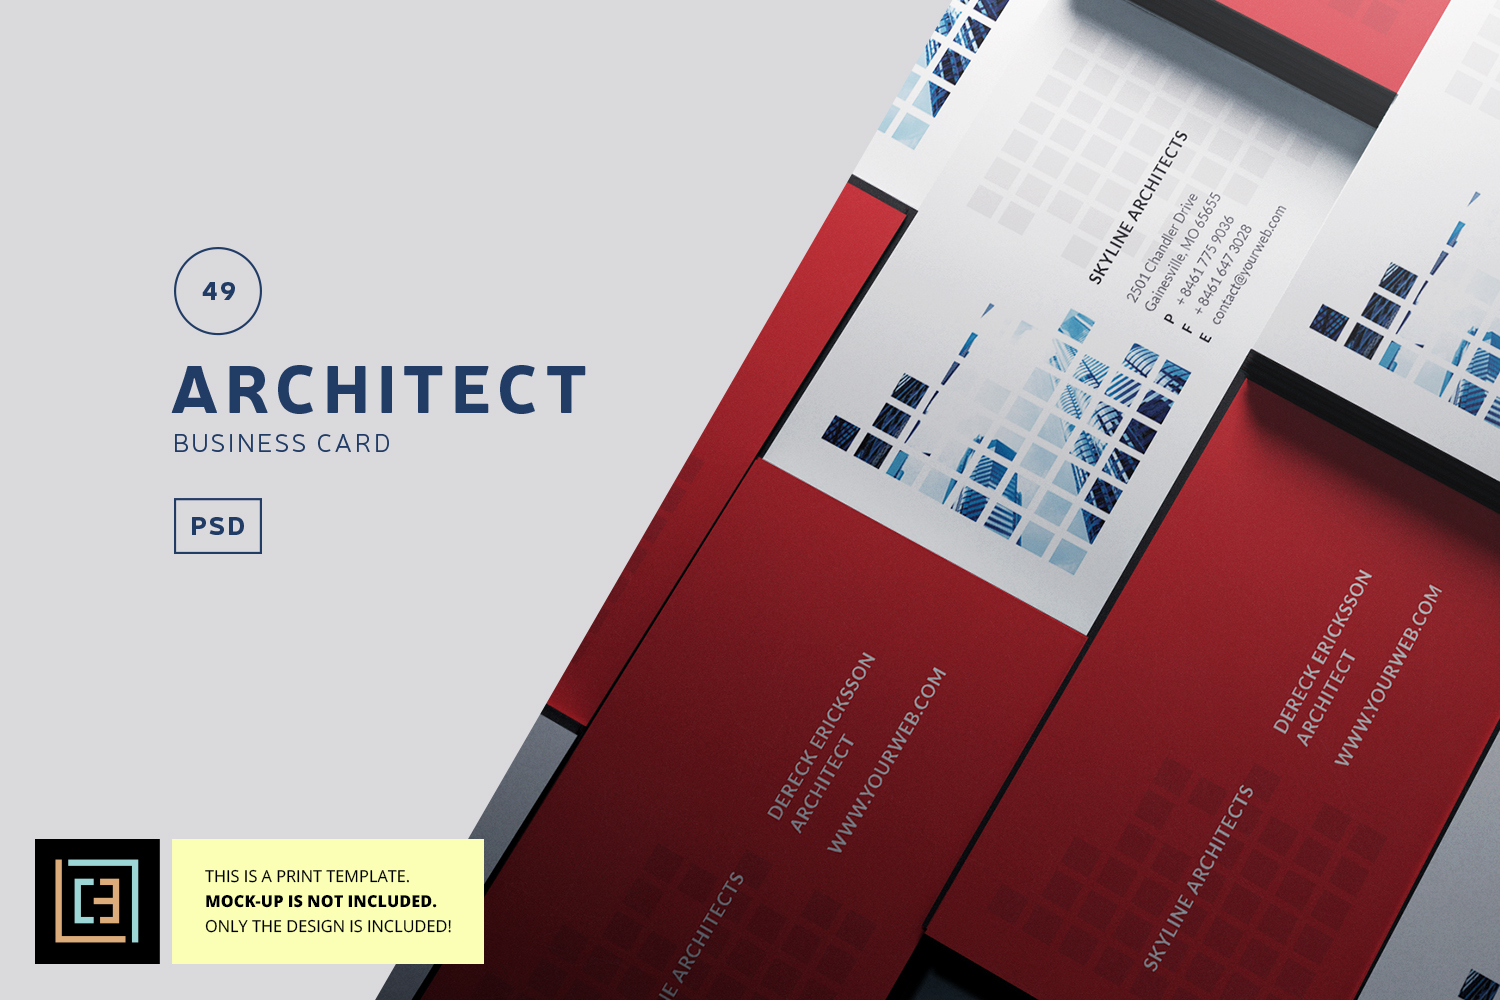 architect business card bc049 example image 1 - Architect Business Card